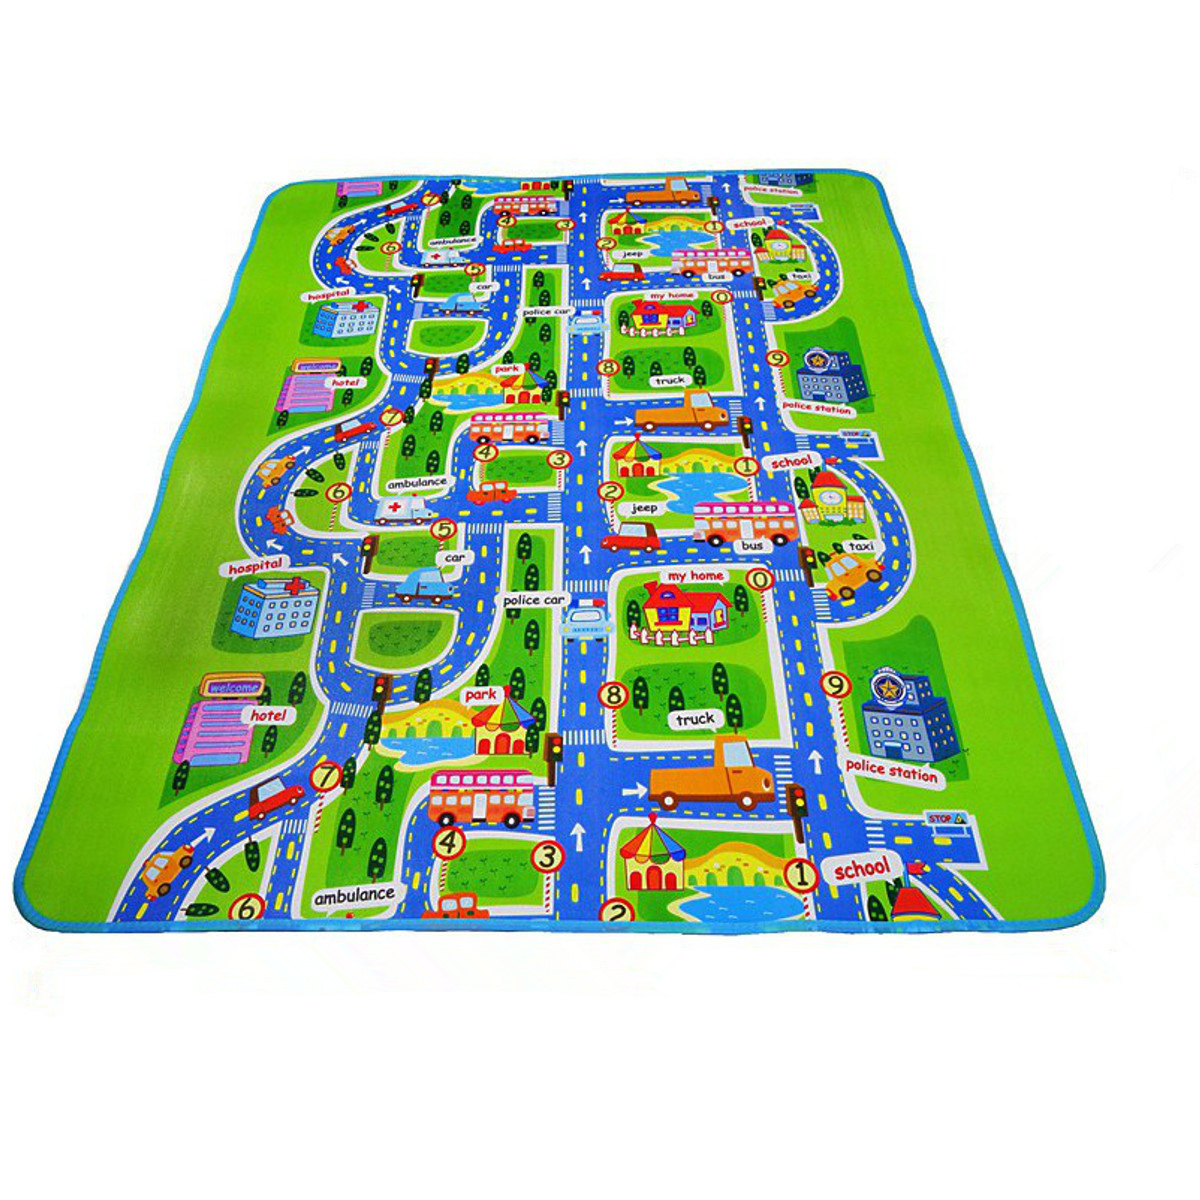 Toddler Rugs,Kids Carpet Play mat Rug City Life-Play, Learn and Have Fun Safely - Kids Baby, Children Educational Road Traffic Play Mat, For Bedroom Play Room Game Safe Area